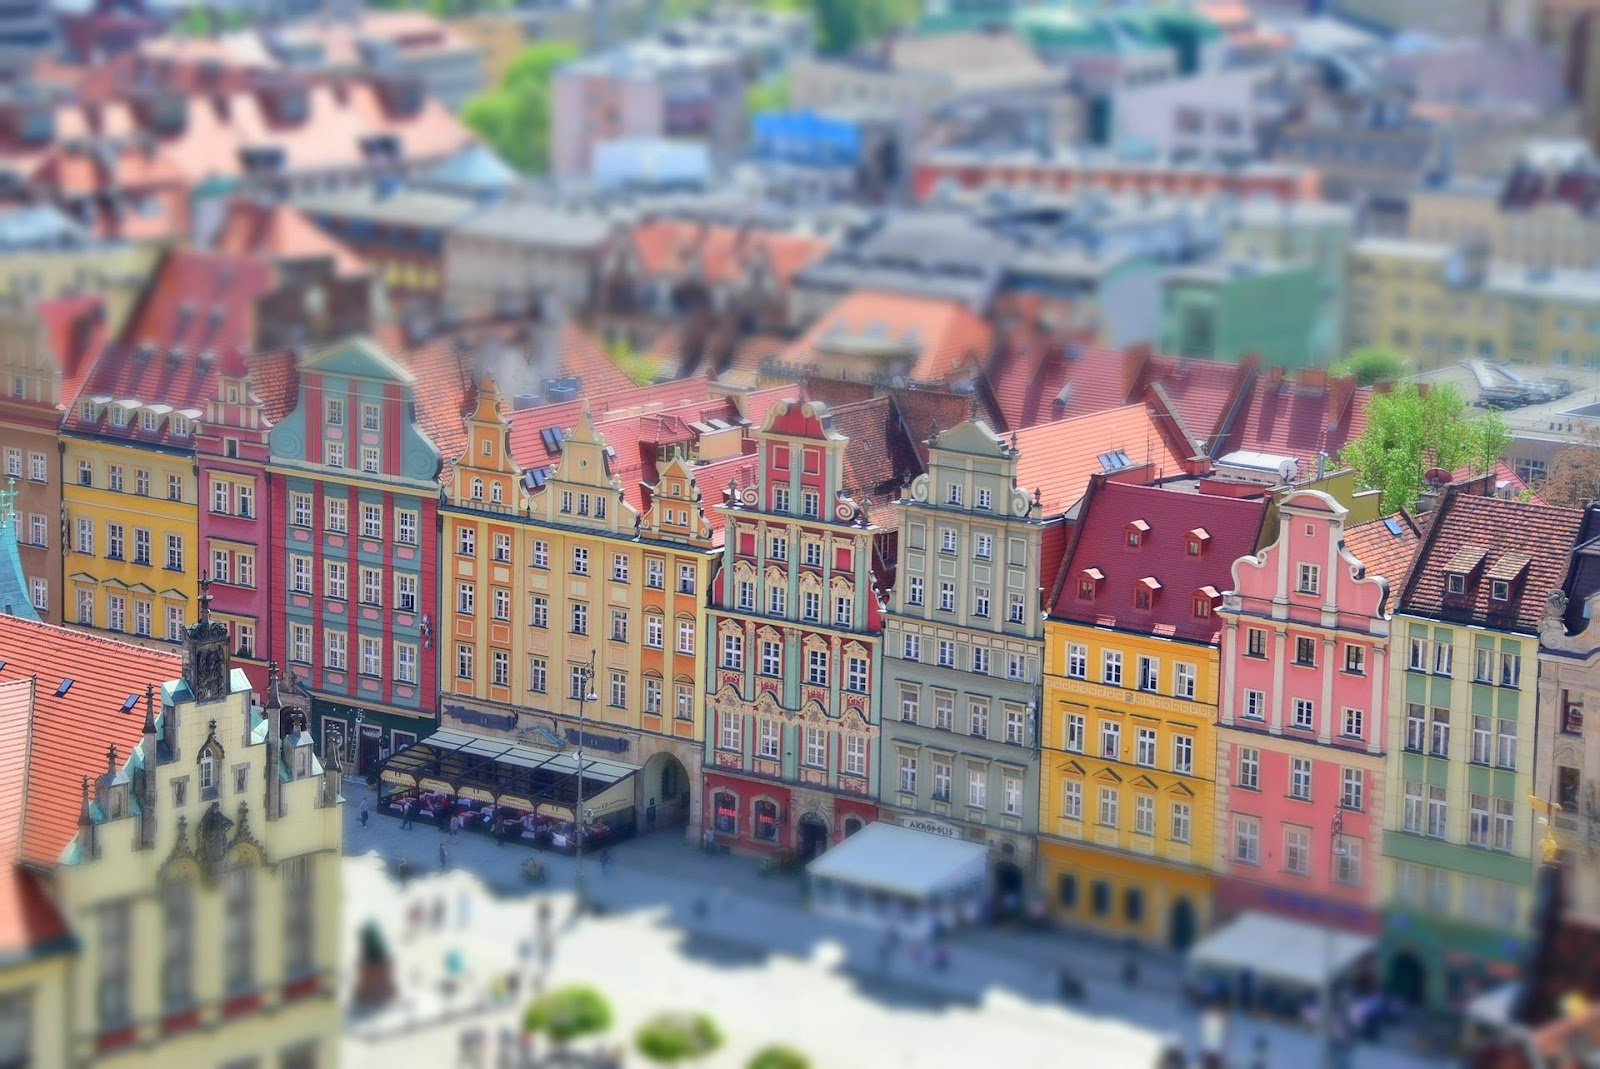 wroclaw push-pull miniature effect colorful medieval buildings in downtown wroclaw in poland on a sunny day